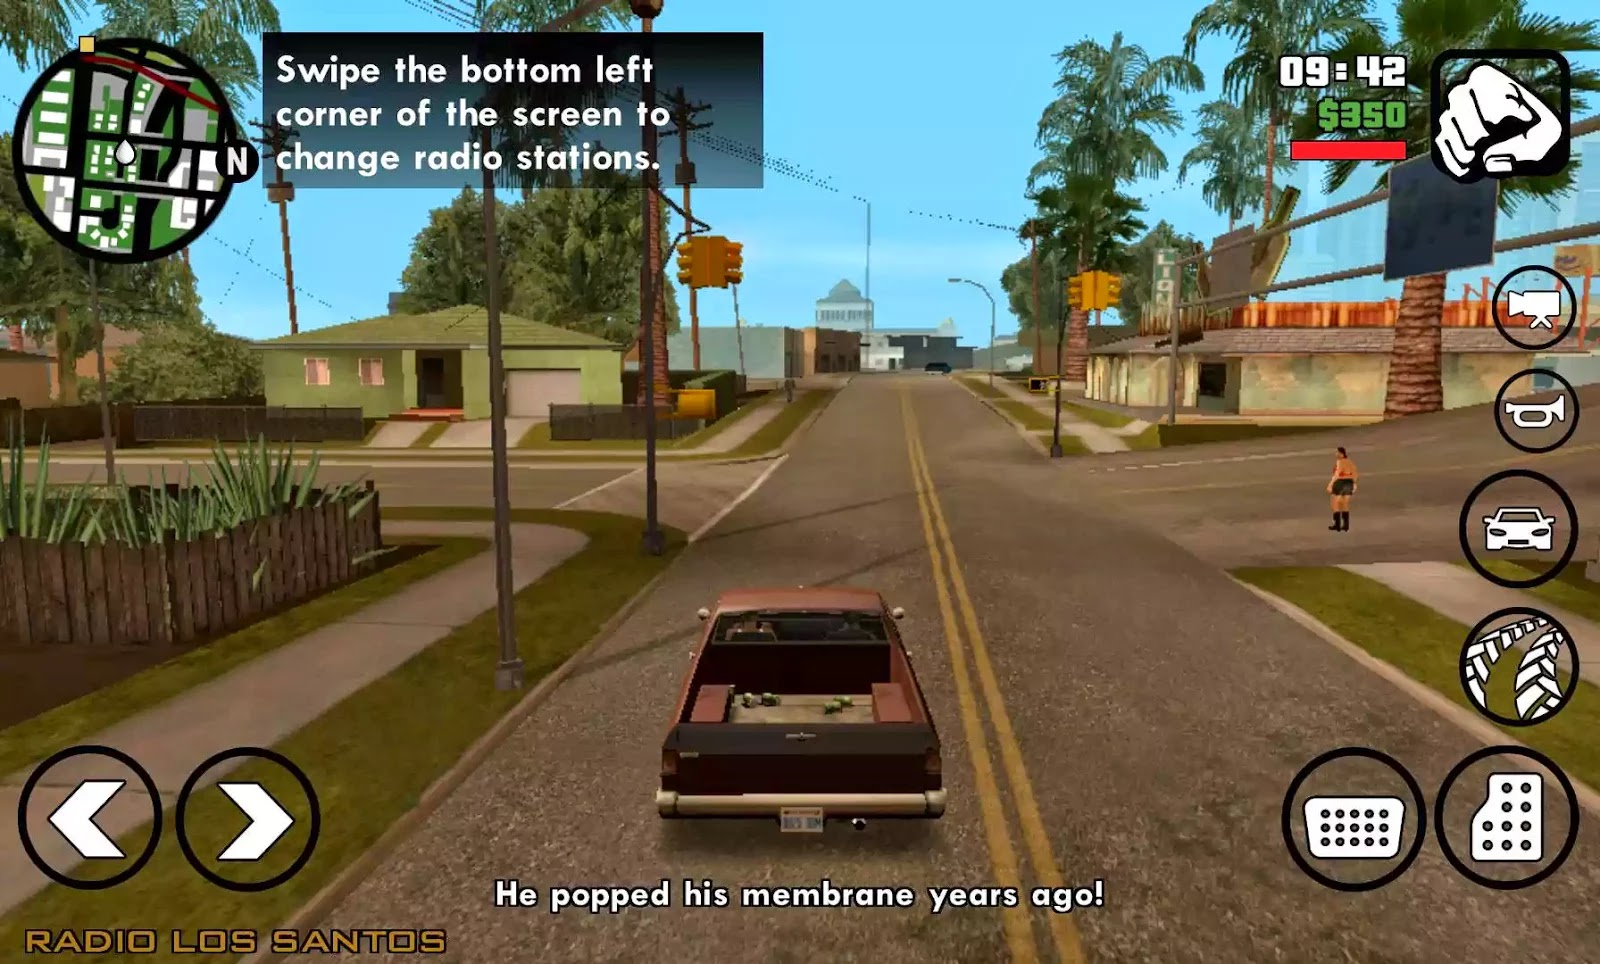 download gta san andreas game for android apk+data